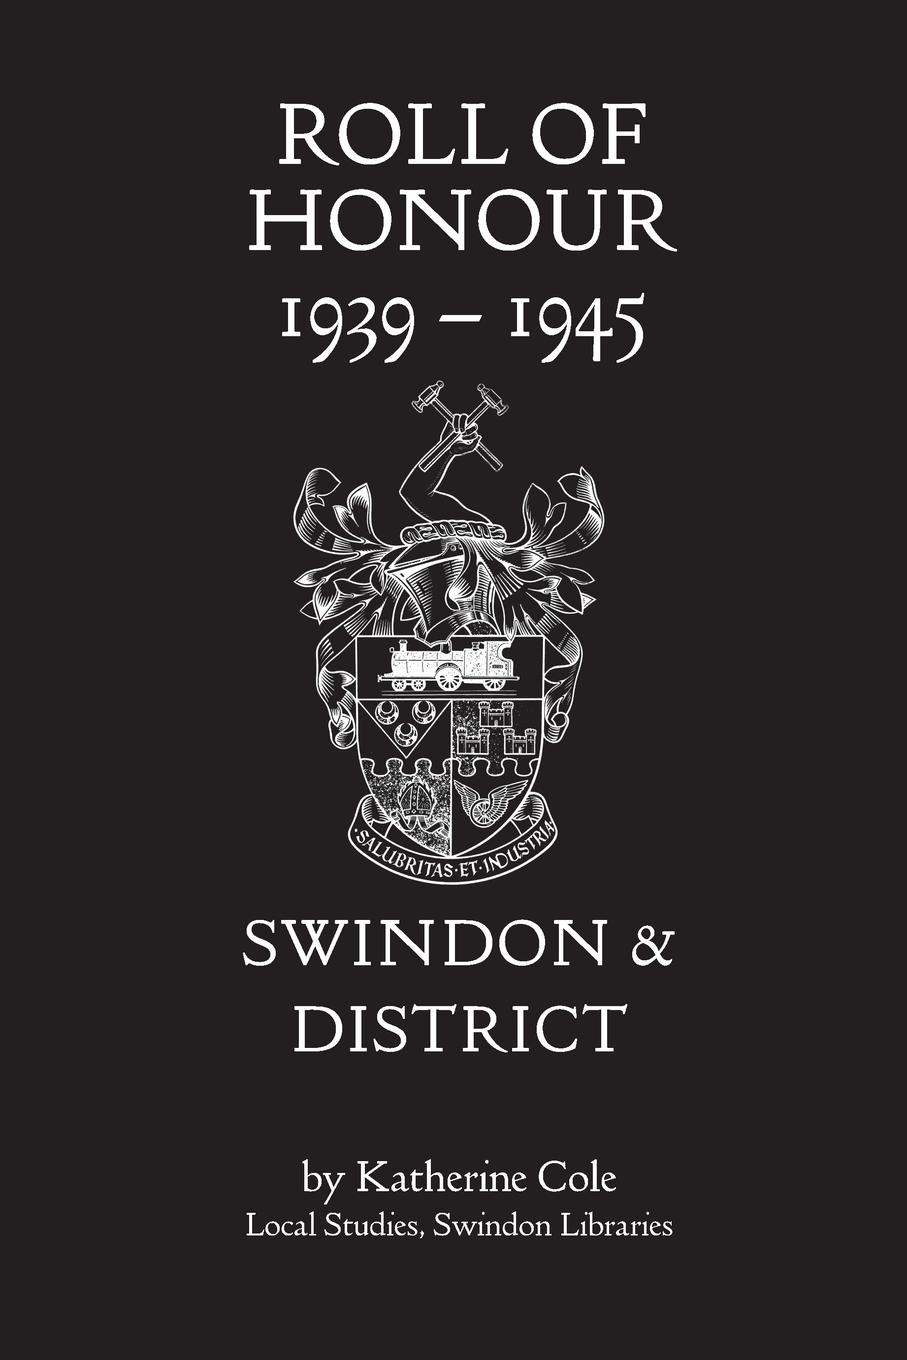 Roll of Honour 1939-1945. Swindon and District ralph b levering american opinion and the russian alliance 1939 1945